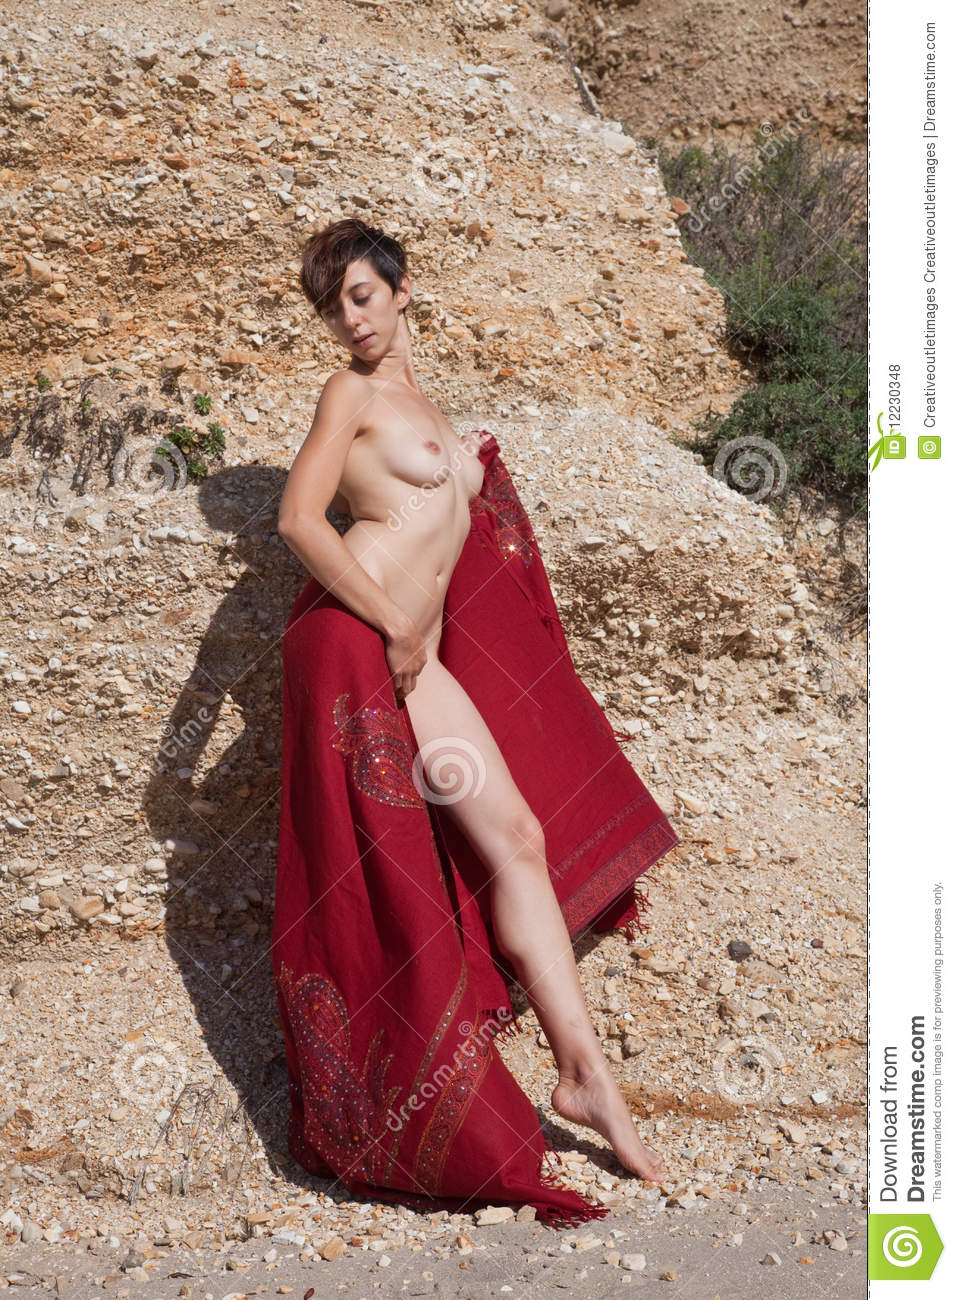 Nude Woman With Red Sarong Stock Photo Image Of Smile -9502